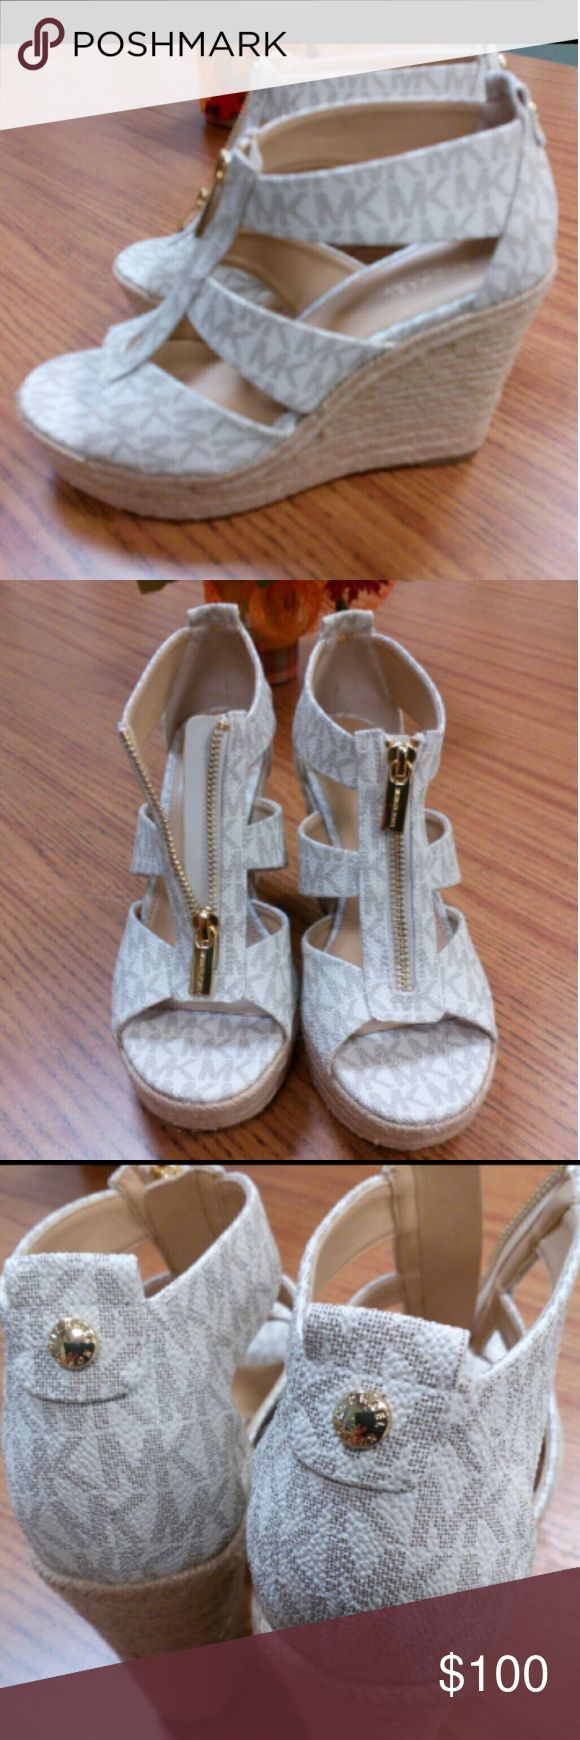 Michael Kors Damita Wedges! TRADES WELCOMED! Ivory colored,Leather,Gold zipper hallmarked Michael Kors! Beautiful design! New without box! Michael Kors Shoes Wedges